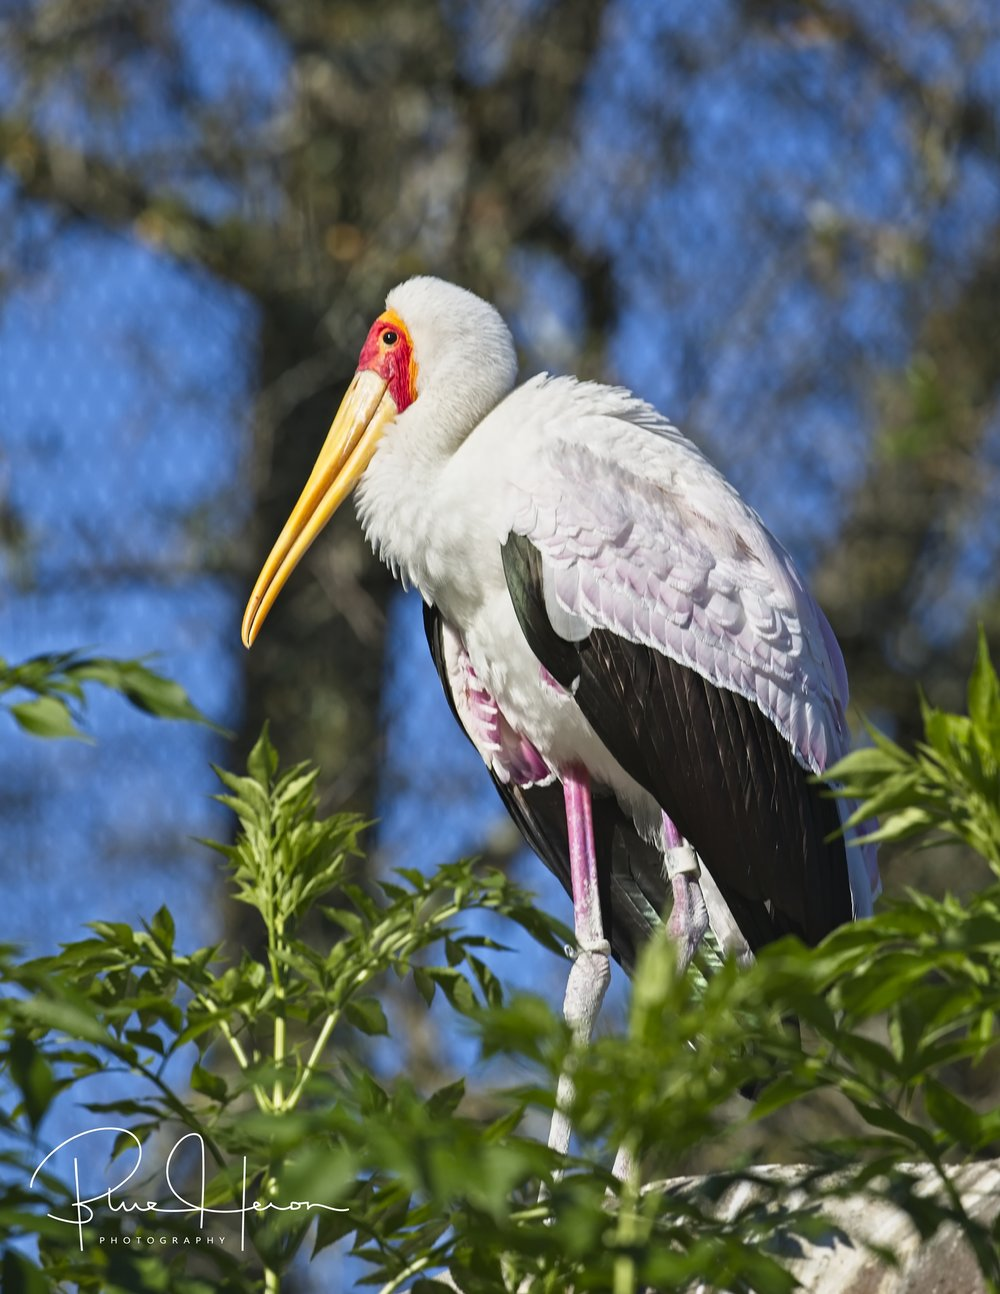 The Painted Stork has some pink in the feathers and very colorful..